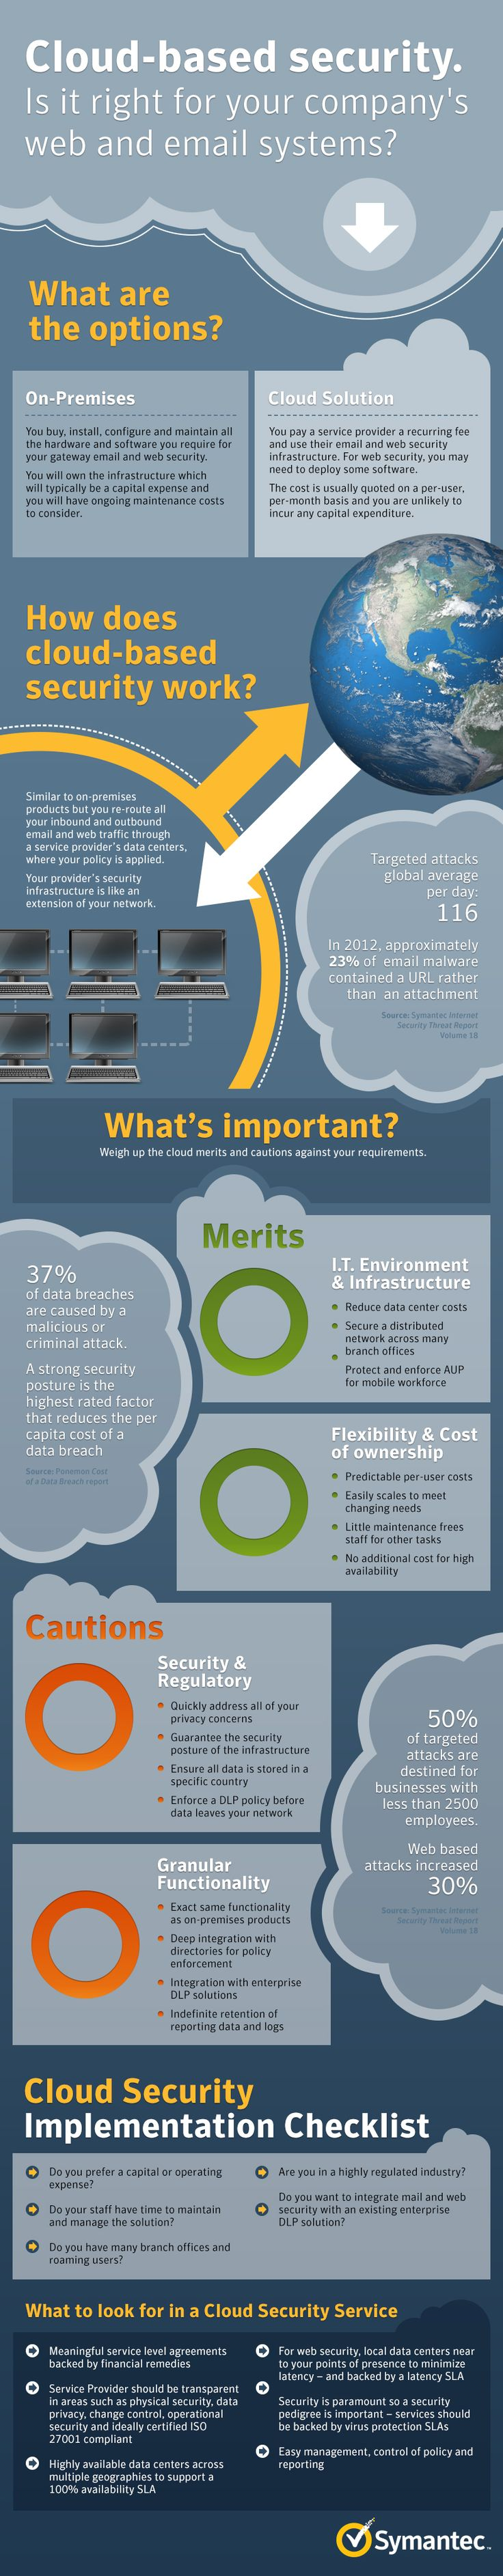 This infographic discusses web and email security and the options available. You can choose between an on premises solutions or a cloud solution. It discusses how cloud-based security works, the merits and flexibility and cost of ownership as well as some cautions.